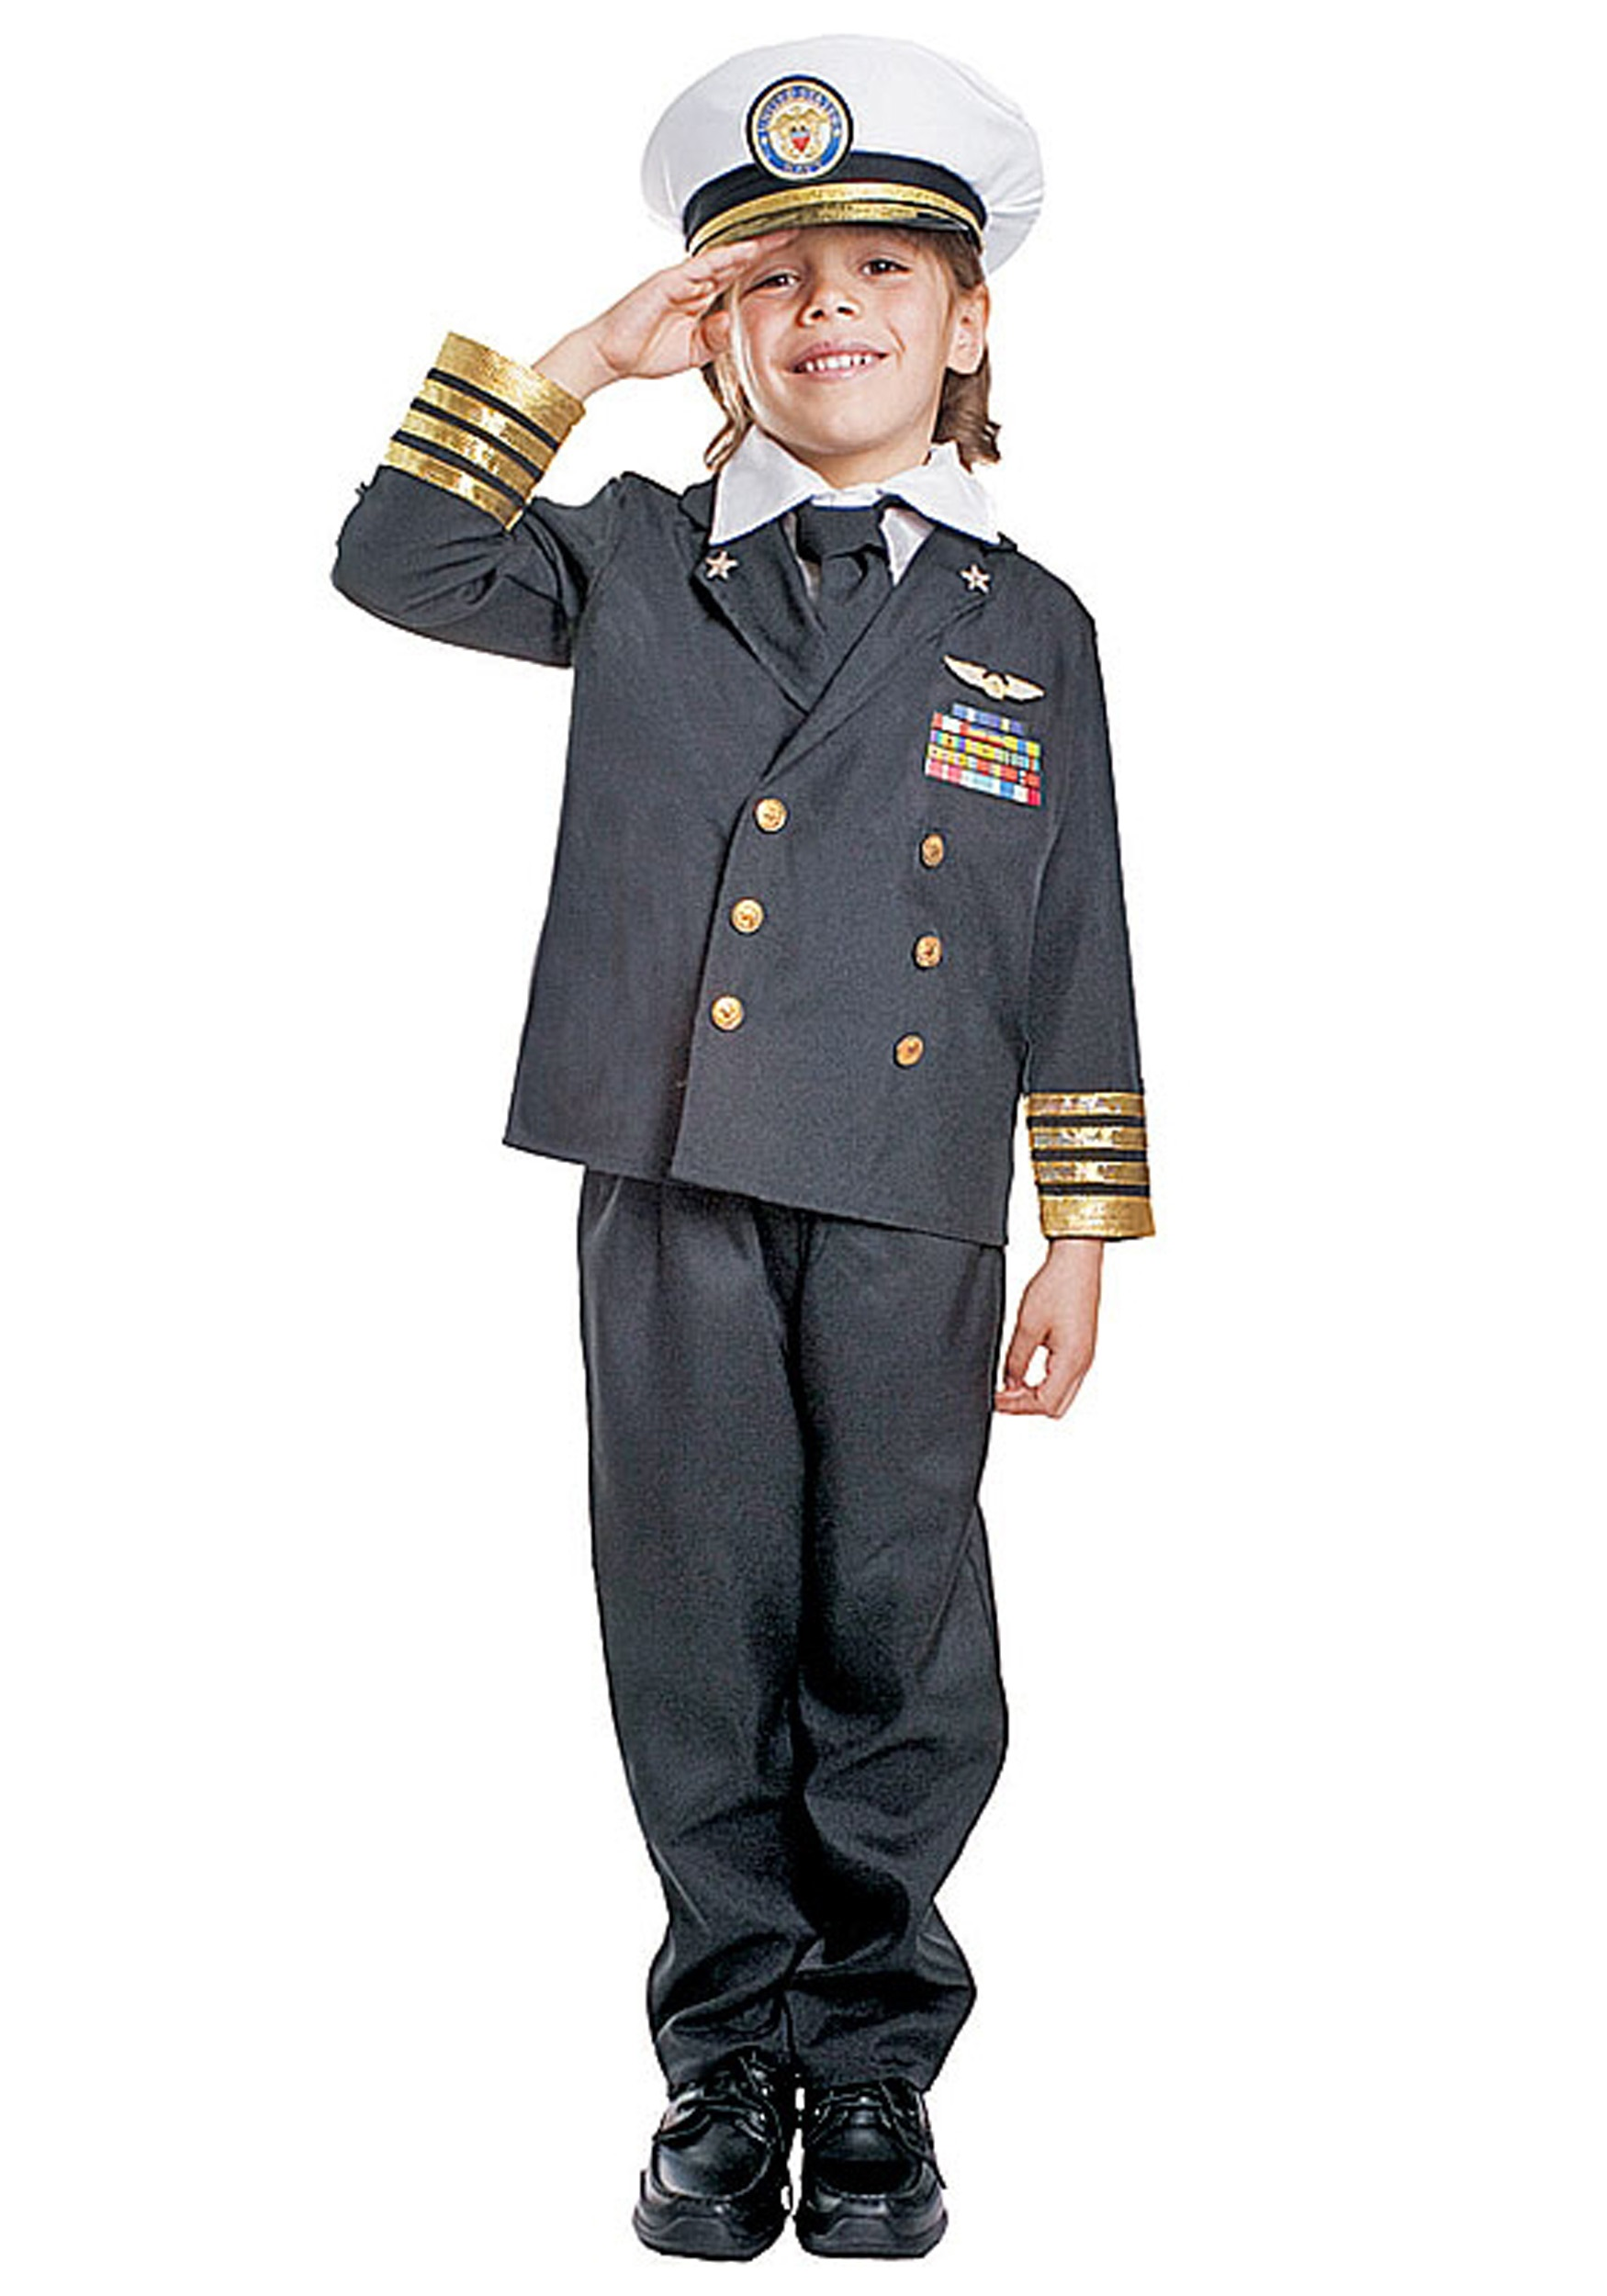 Airline Pilot Costume for Kids  sc 1 st  Costumes FC : pilot halloween costume toddler  - Germanpascual.Com